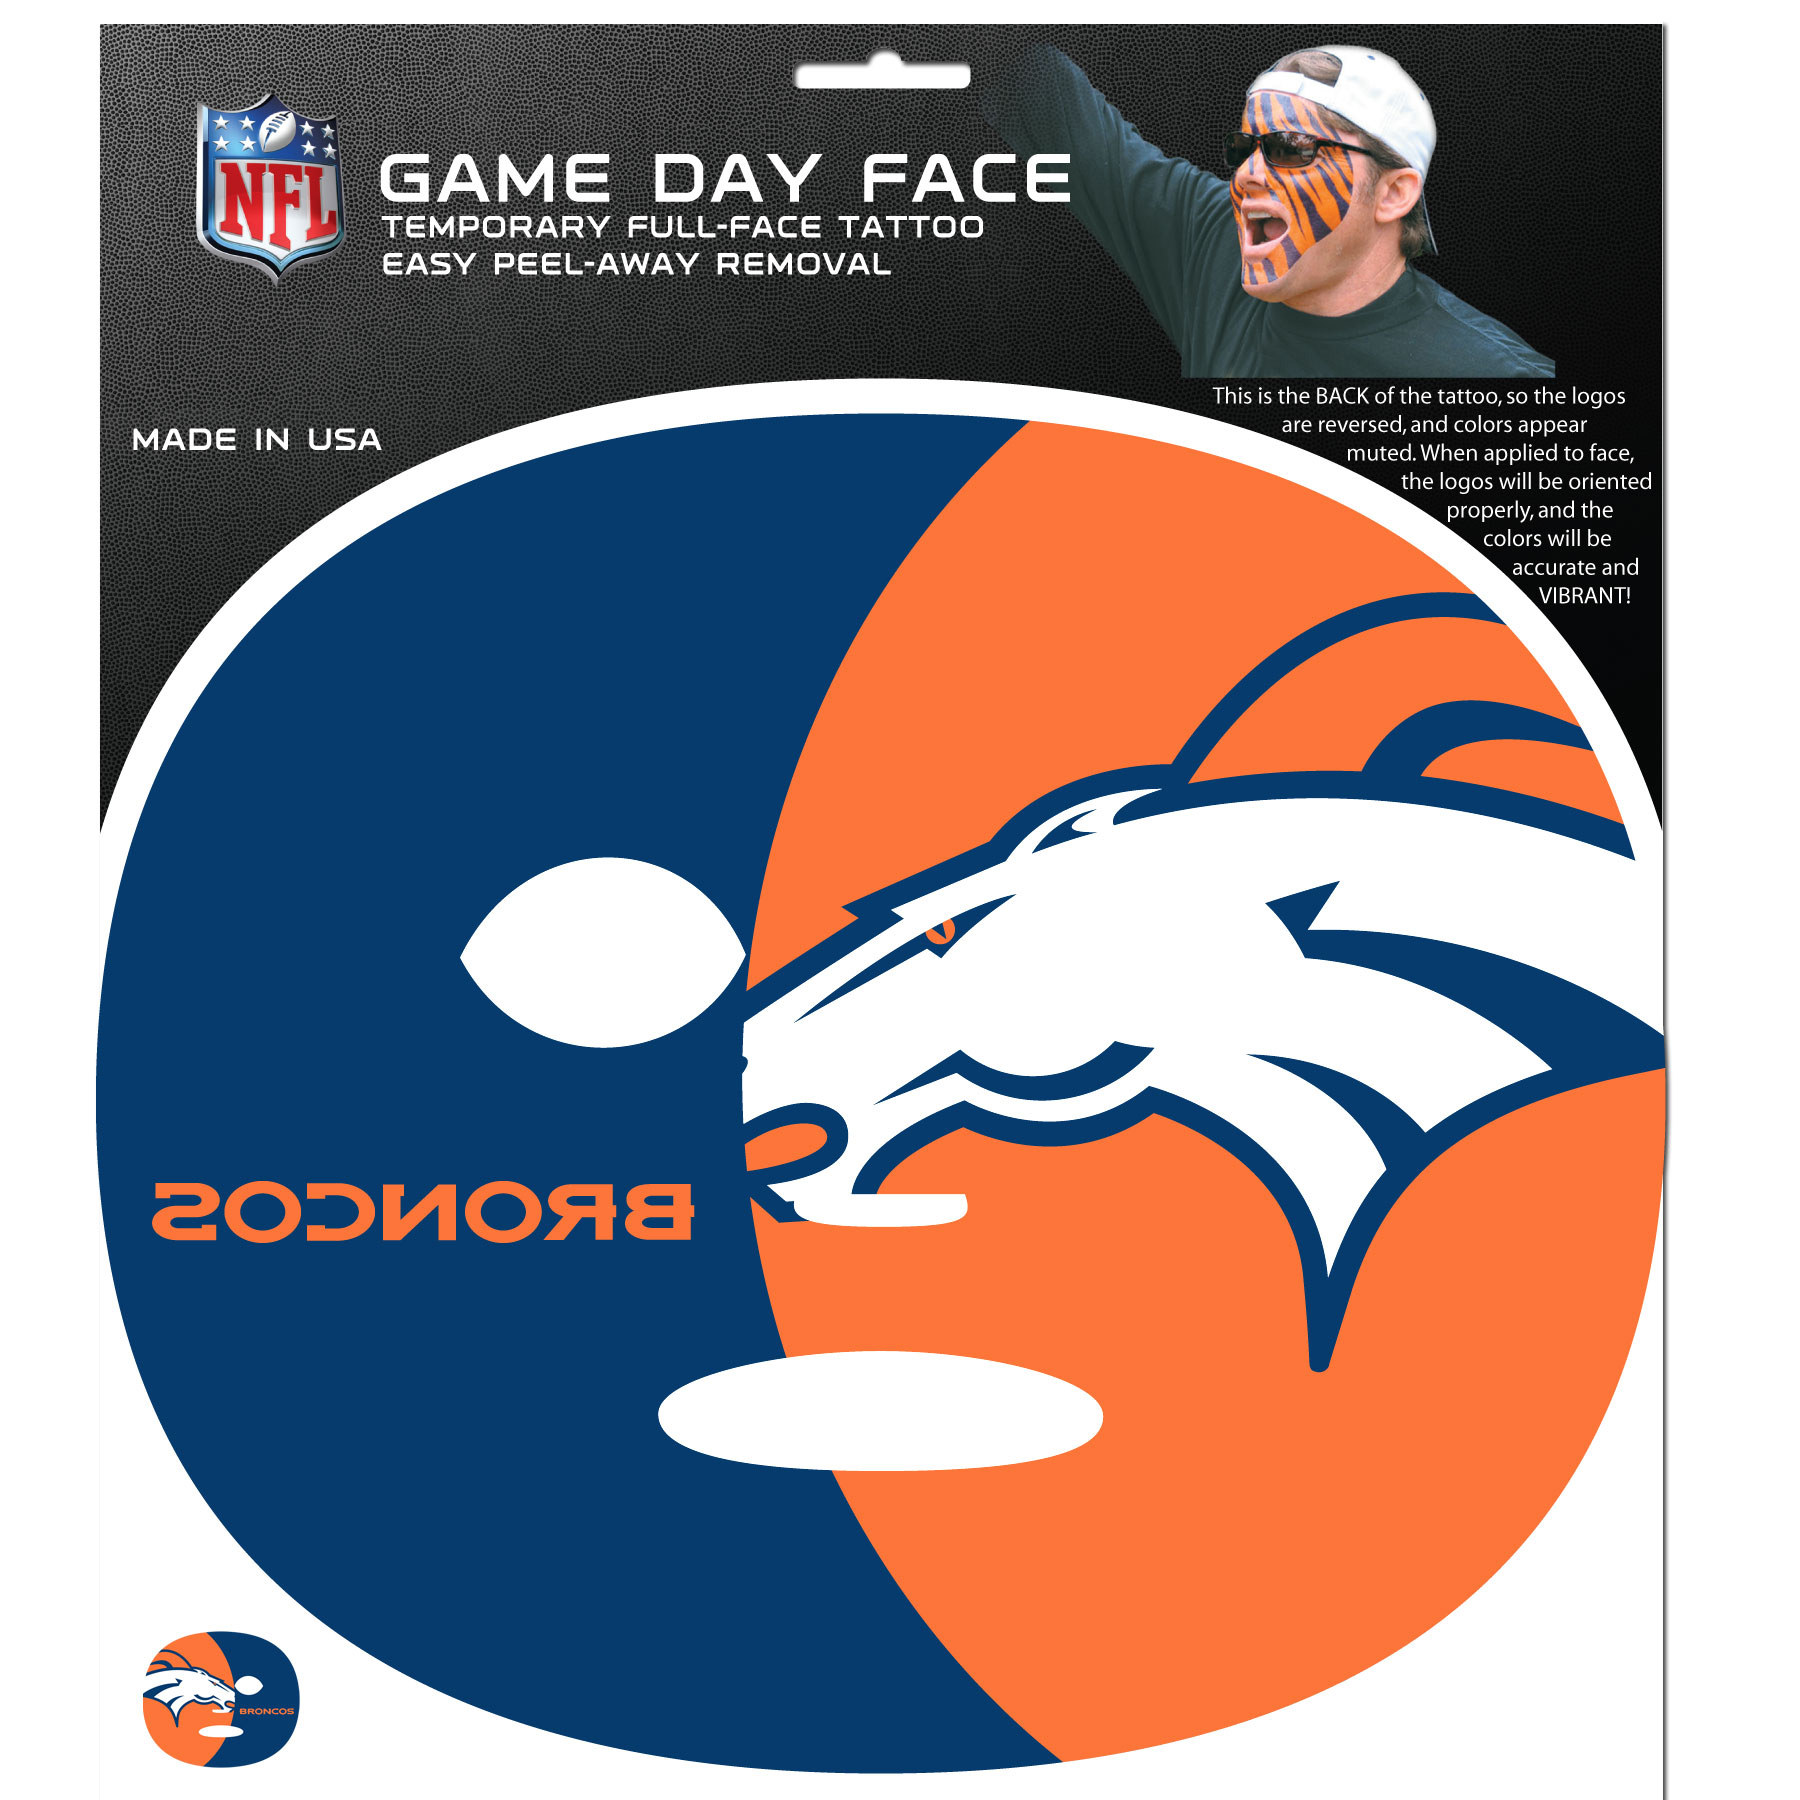 Denver Broncos Game Face Temporary Tattoo - No better way to show your Denver Broncos pride than by painting your face. Siskiyou's Game Day Face Temporary Tattoo isn't your typical face paint. It is a water based application that doesn't smudge, smear or sweat off  while you're wearing it and easily peels off after you're done celebrating your team's big Win! The temporary tattoo is large enough to trim down to fit your face.  Our Game Day Face Temporary Tattoo's are fun for fans of all ages. You may have seen our product before,  these are the same Temporary Face Tattoos as pitched on ABC's Shark Tank.